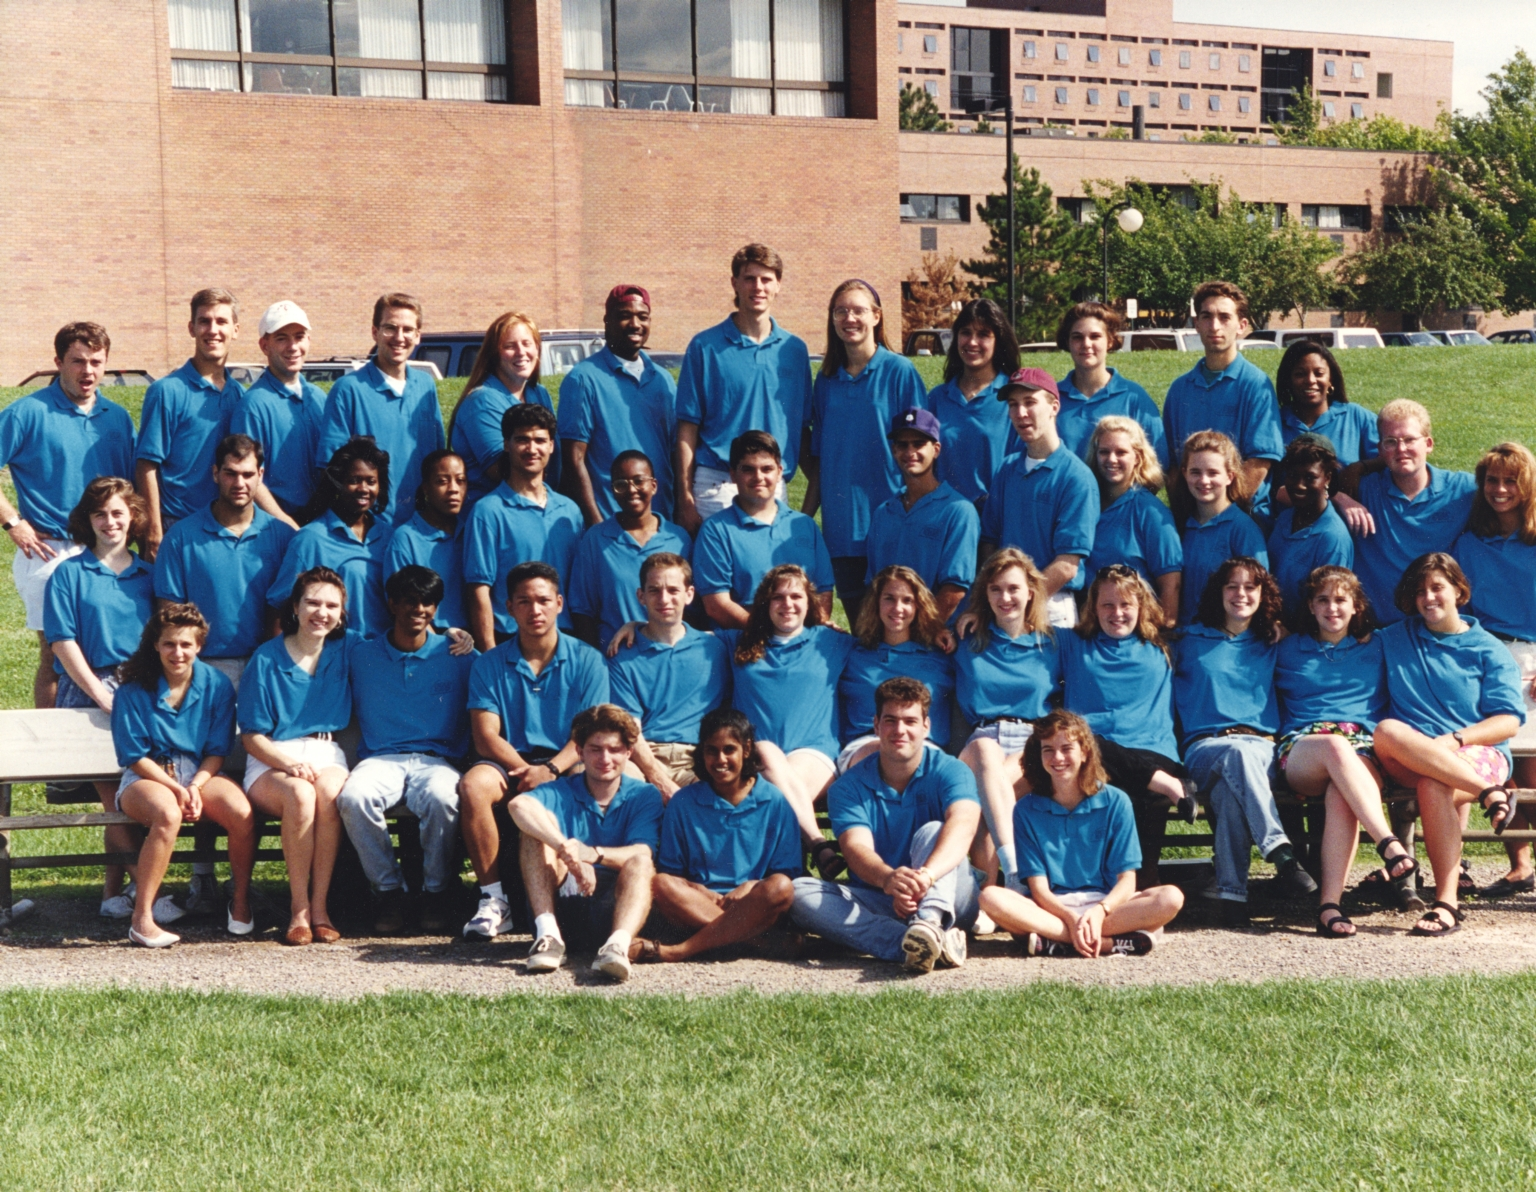 1994 Student Orientation Services Leaders